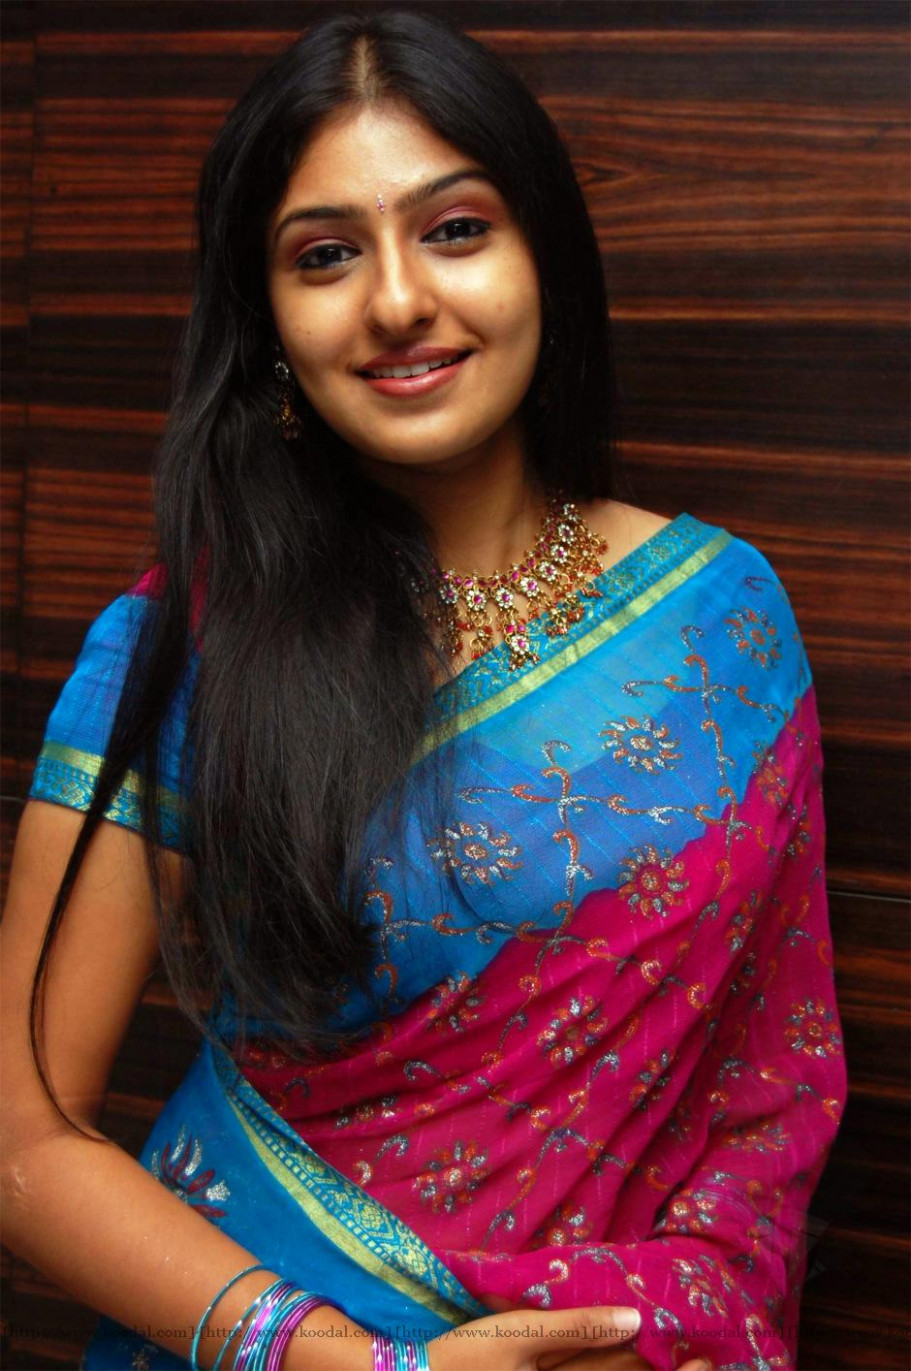 Fashion Entertainment Blog for u: Tamil Actress In Saree